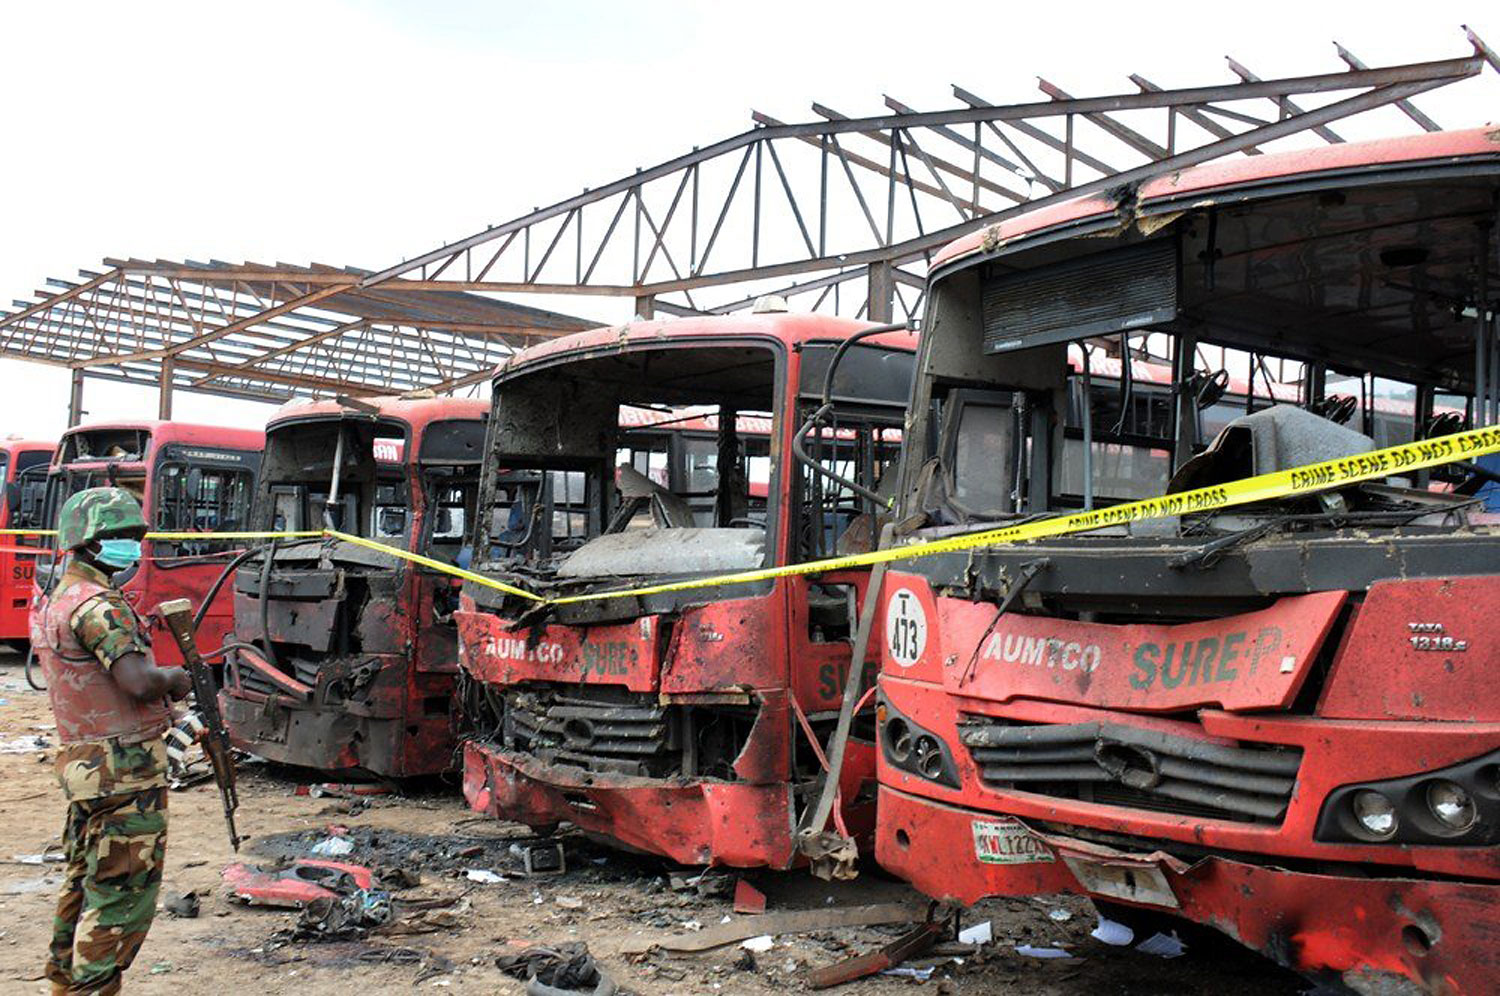 A soldier stands guard in front of burnt buses after an attack in Abuja, on April 14, 2014.